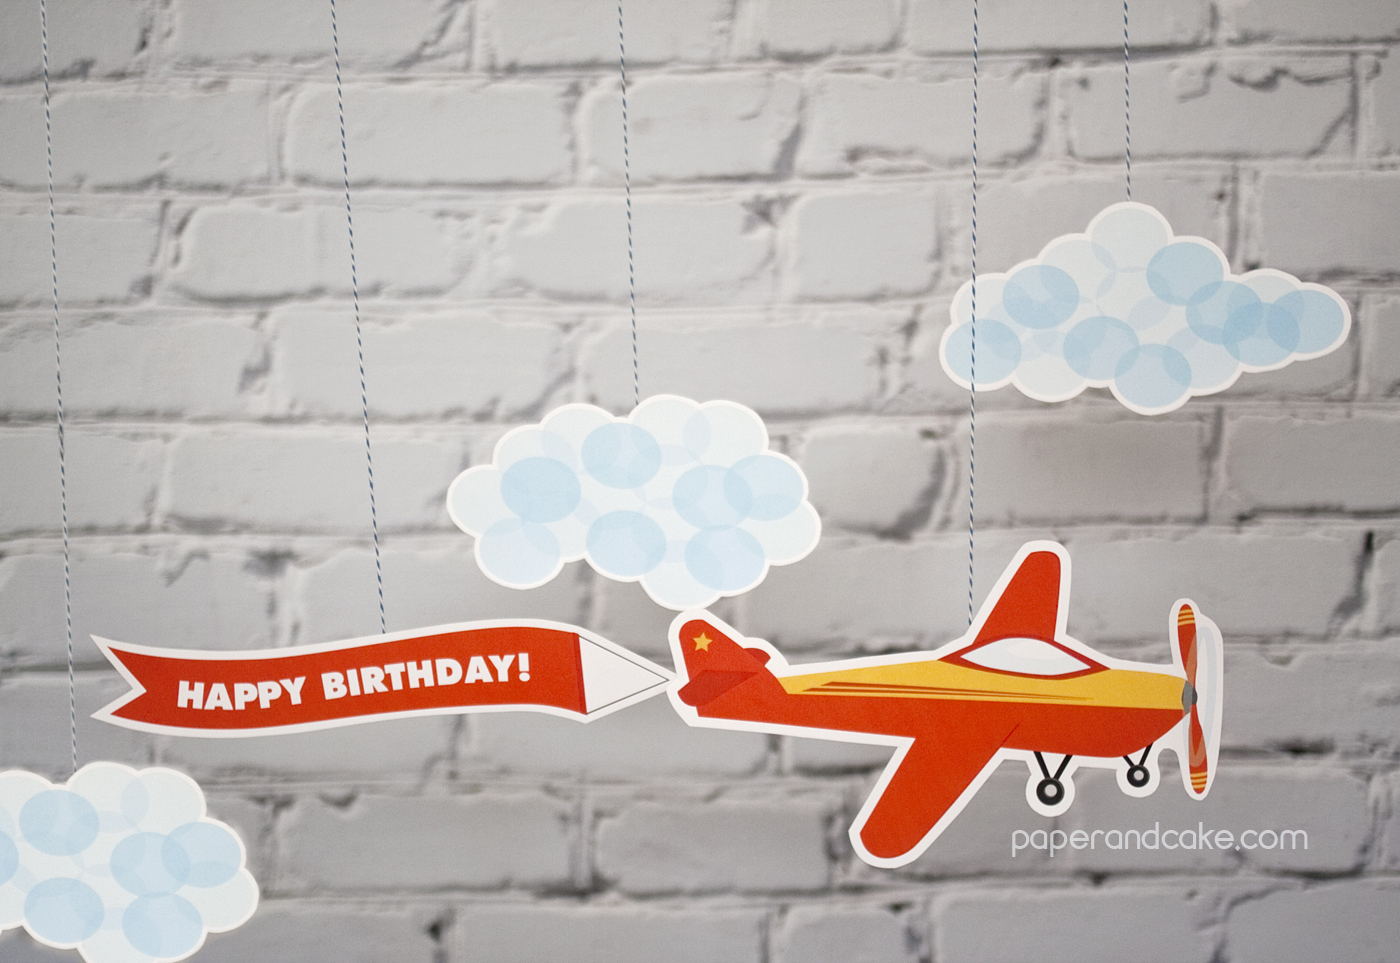 ... and Cake » Products » Baby » Airplane Printable Birthday Party